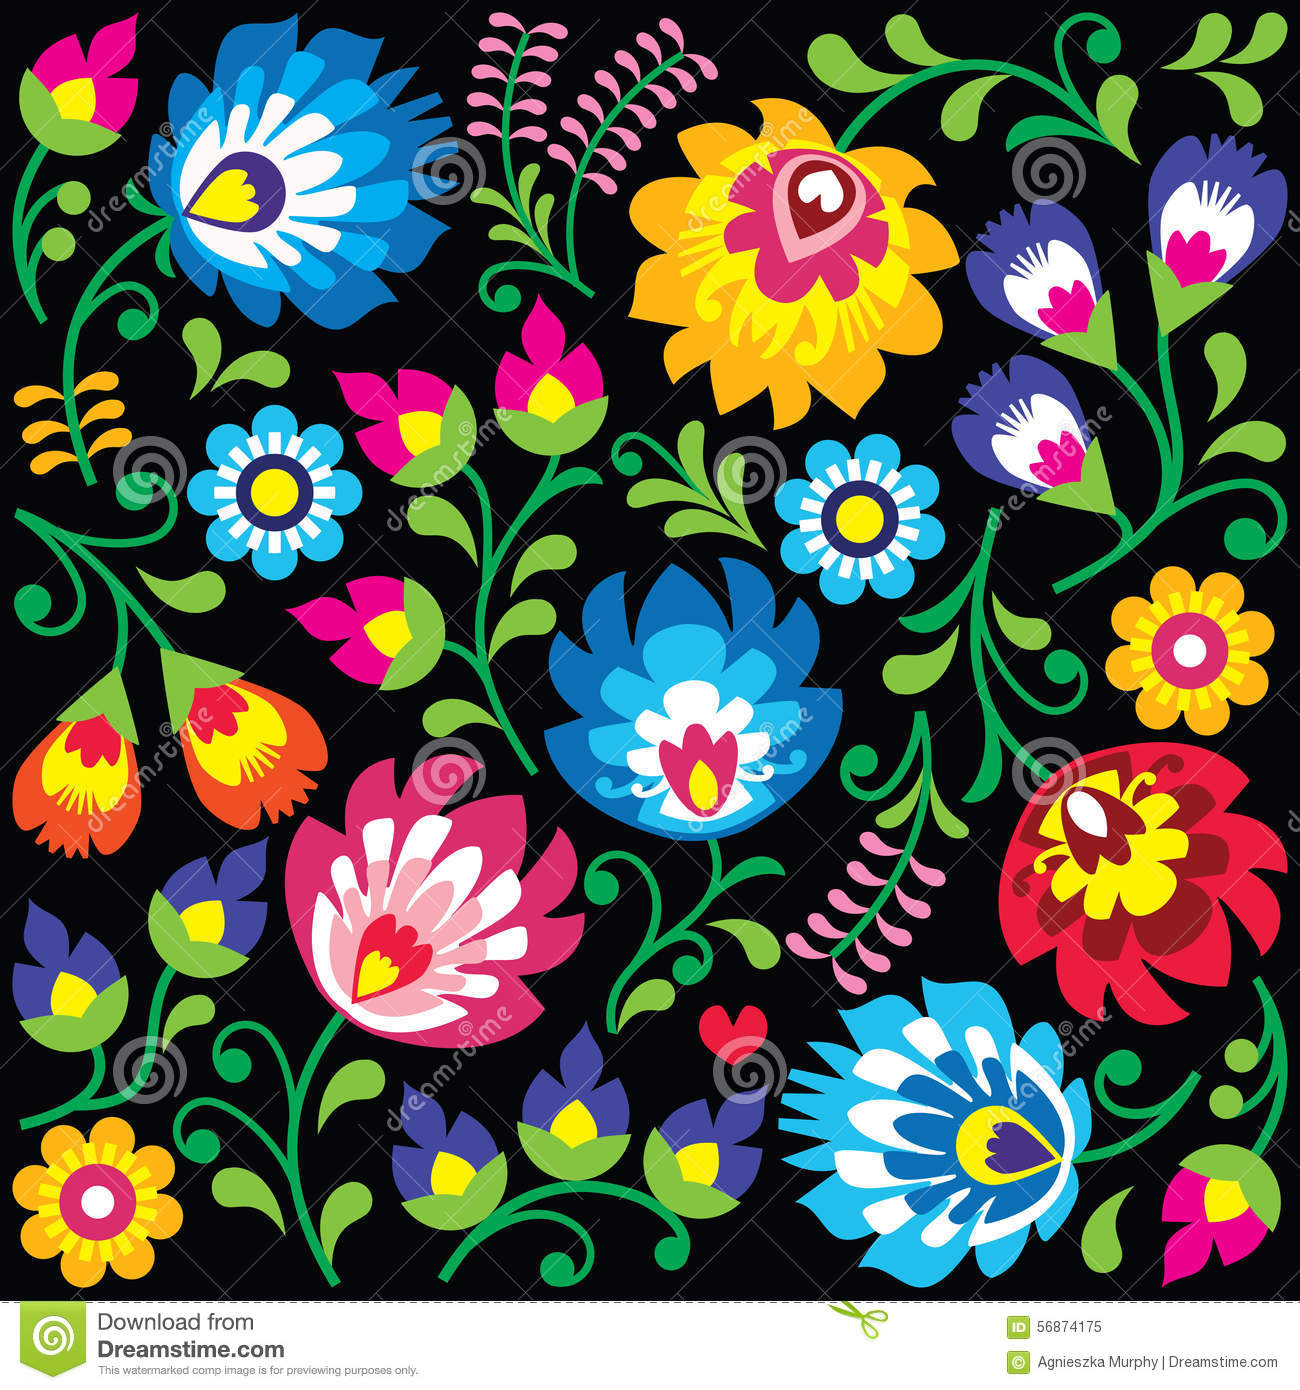 Free embroidery designs cute embroidery designs - Floral Polish Folk Art Pattern On Black Stock Illustration